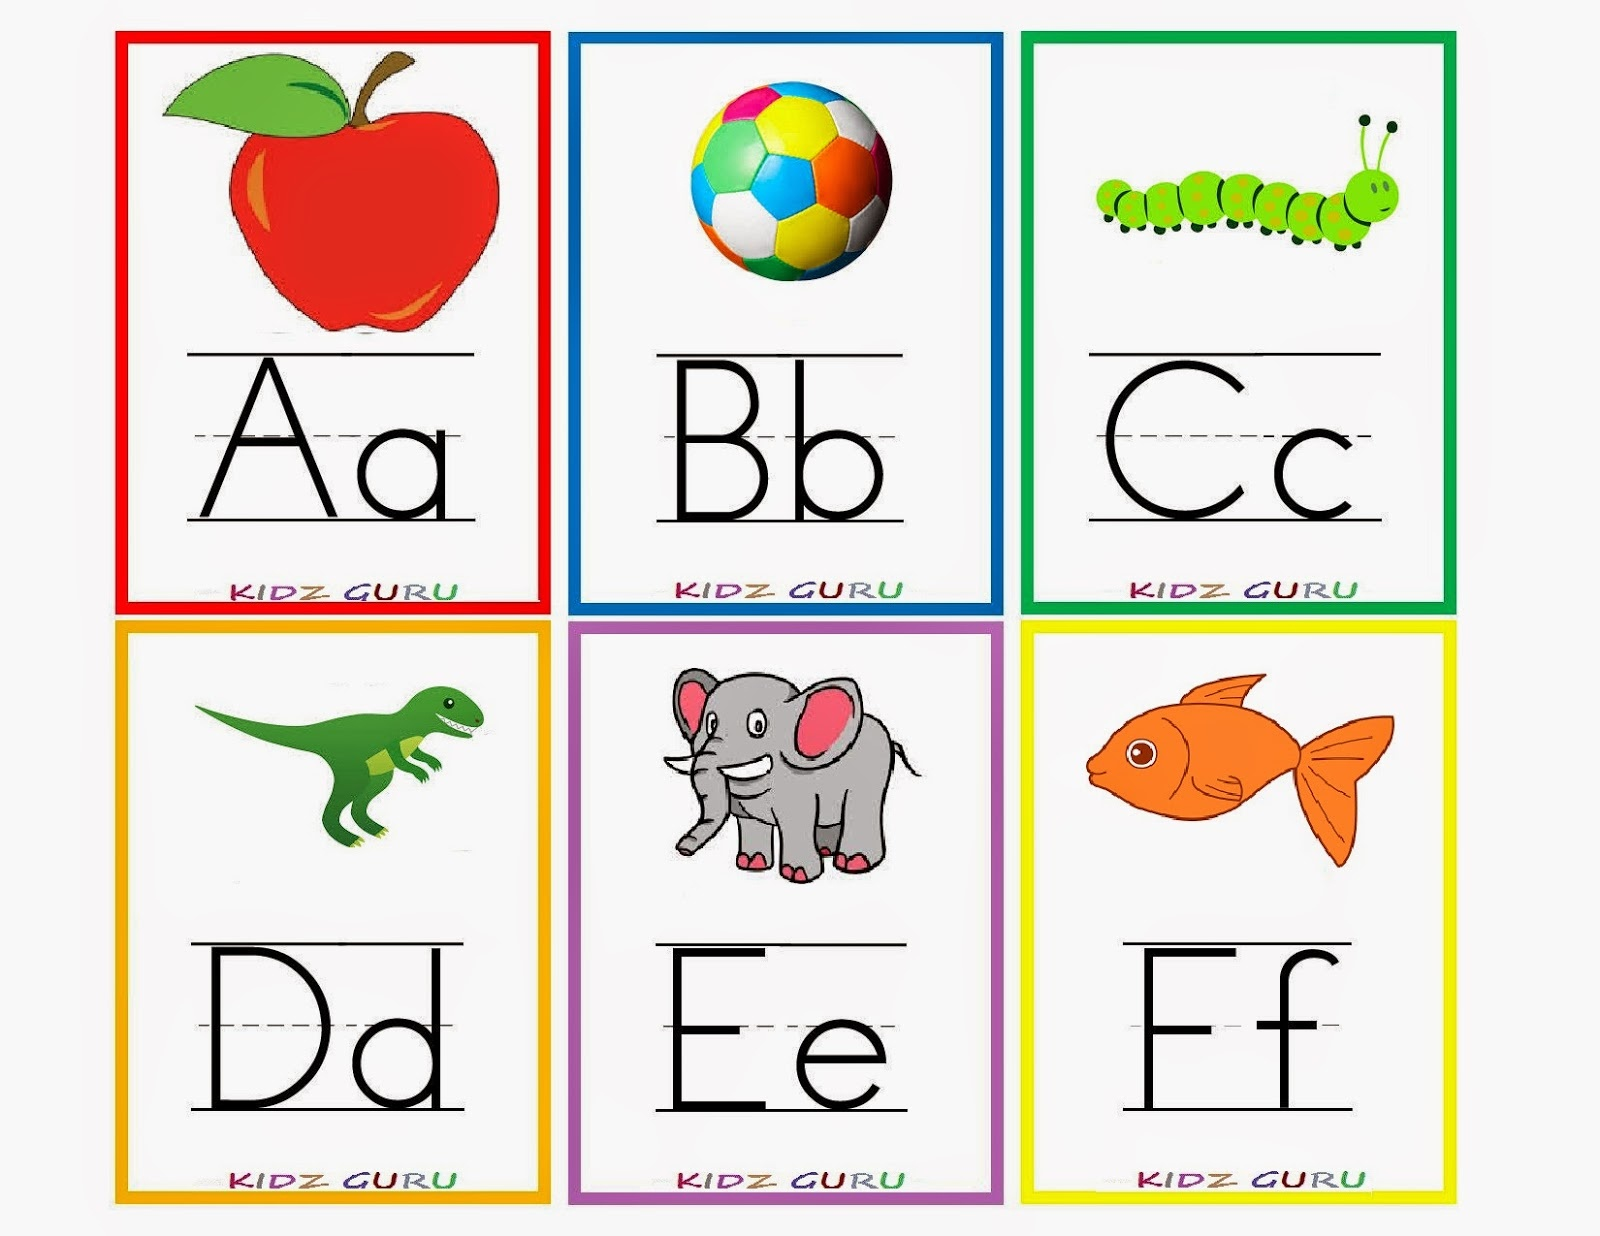 Kindergarten Worksheets: Printable Worksheets - Alphabet Flash Cards - Free Printable Alphabet Flash Cards